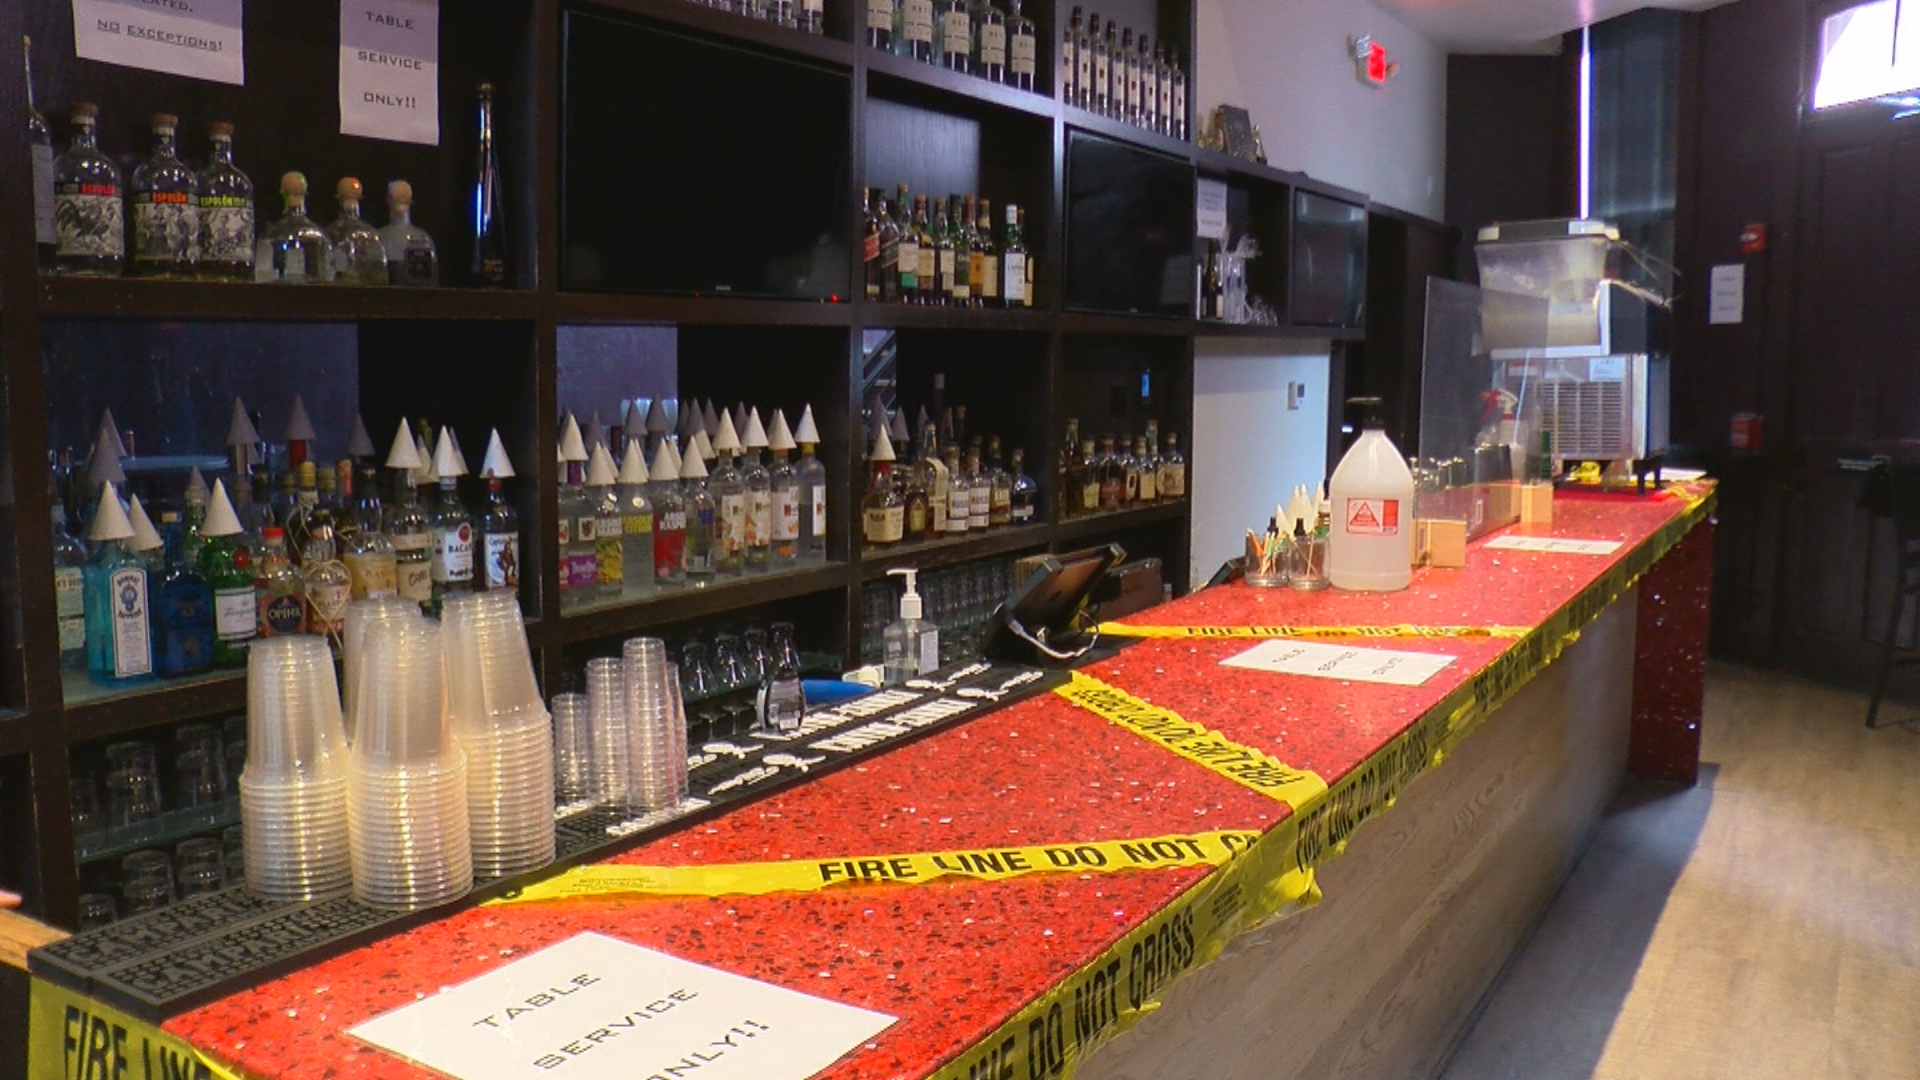 Restaurant Bar Owners Affected By Covid 19 Can Now Apply For City S Help Grants Wish Tv Indianapolis News Indiana Weather Indiana Traffic